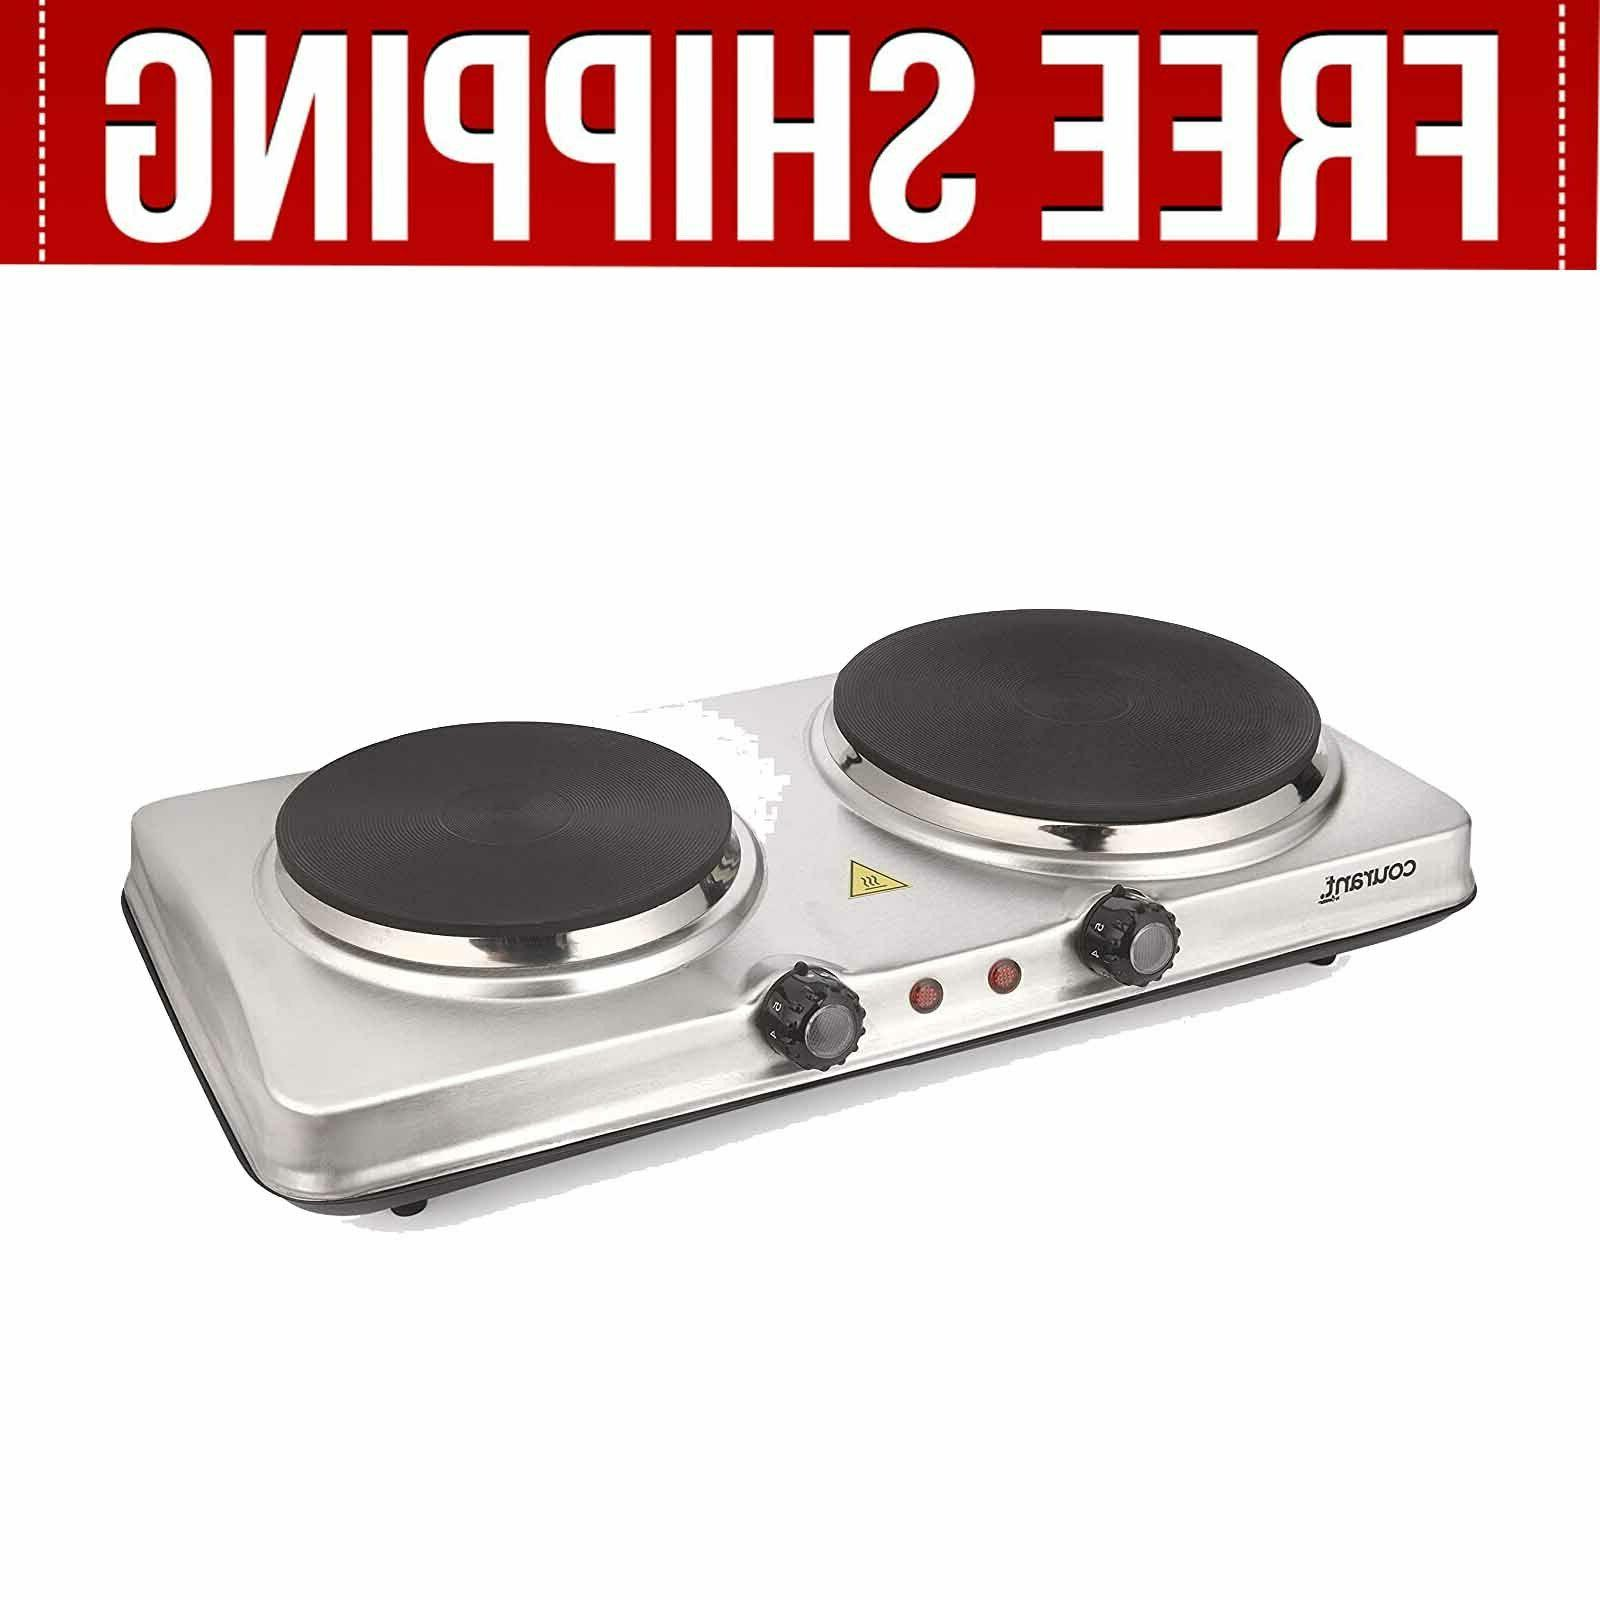 Electric Cooktop Burner Hot Plate Portable Burners Kitchen Cooking